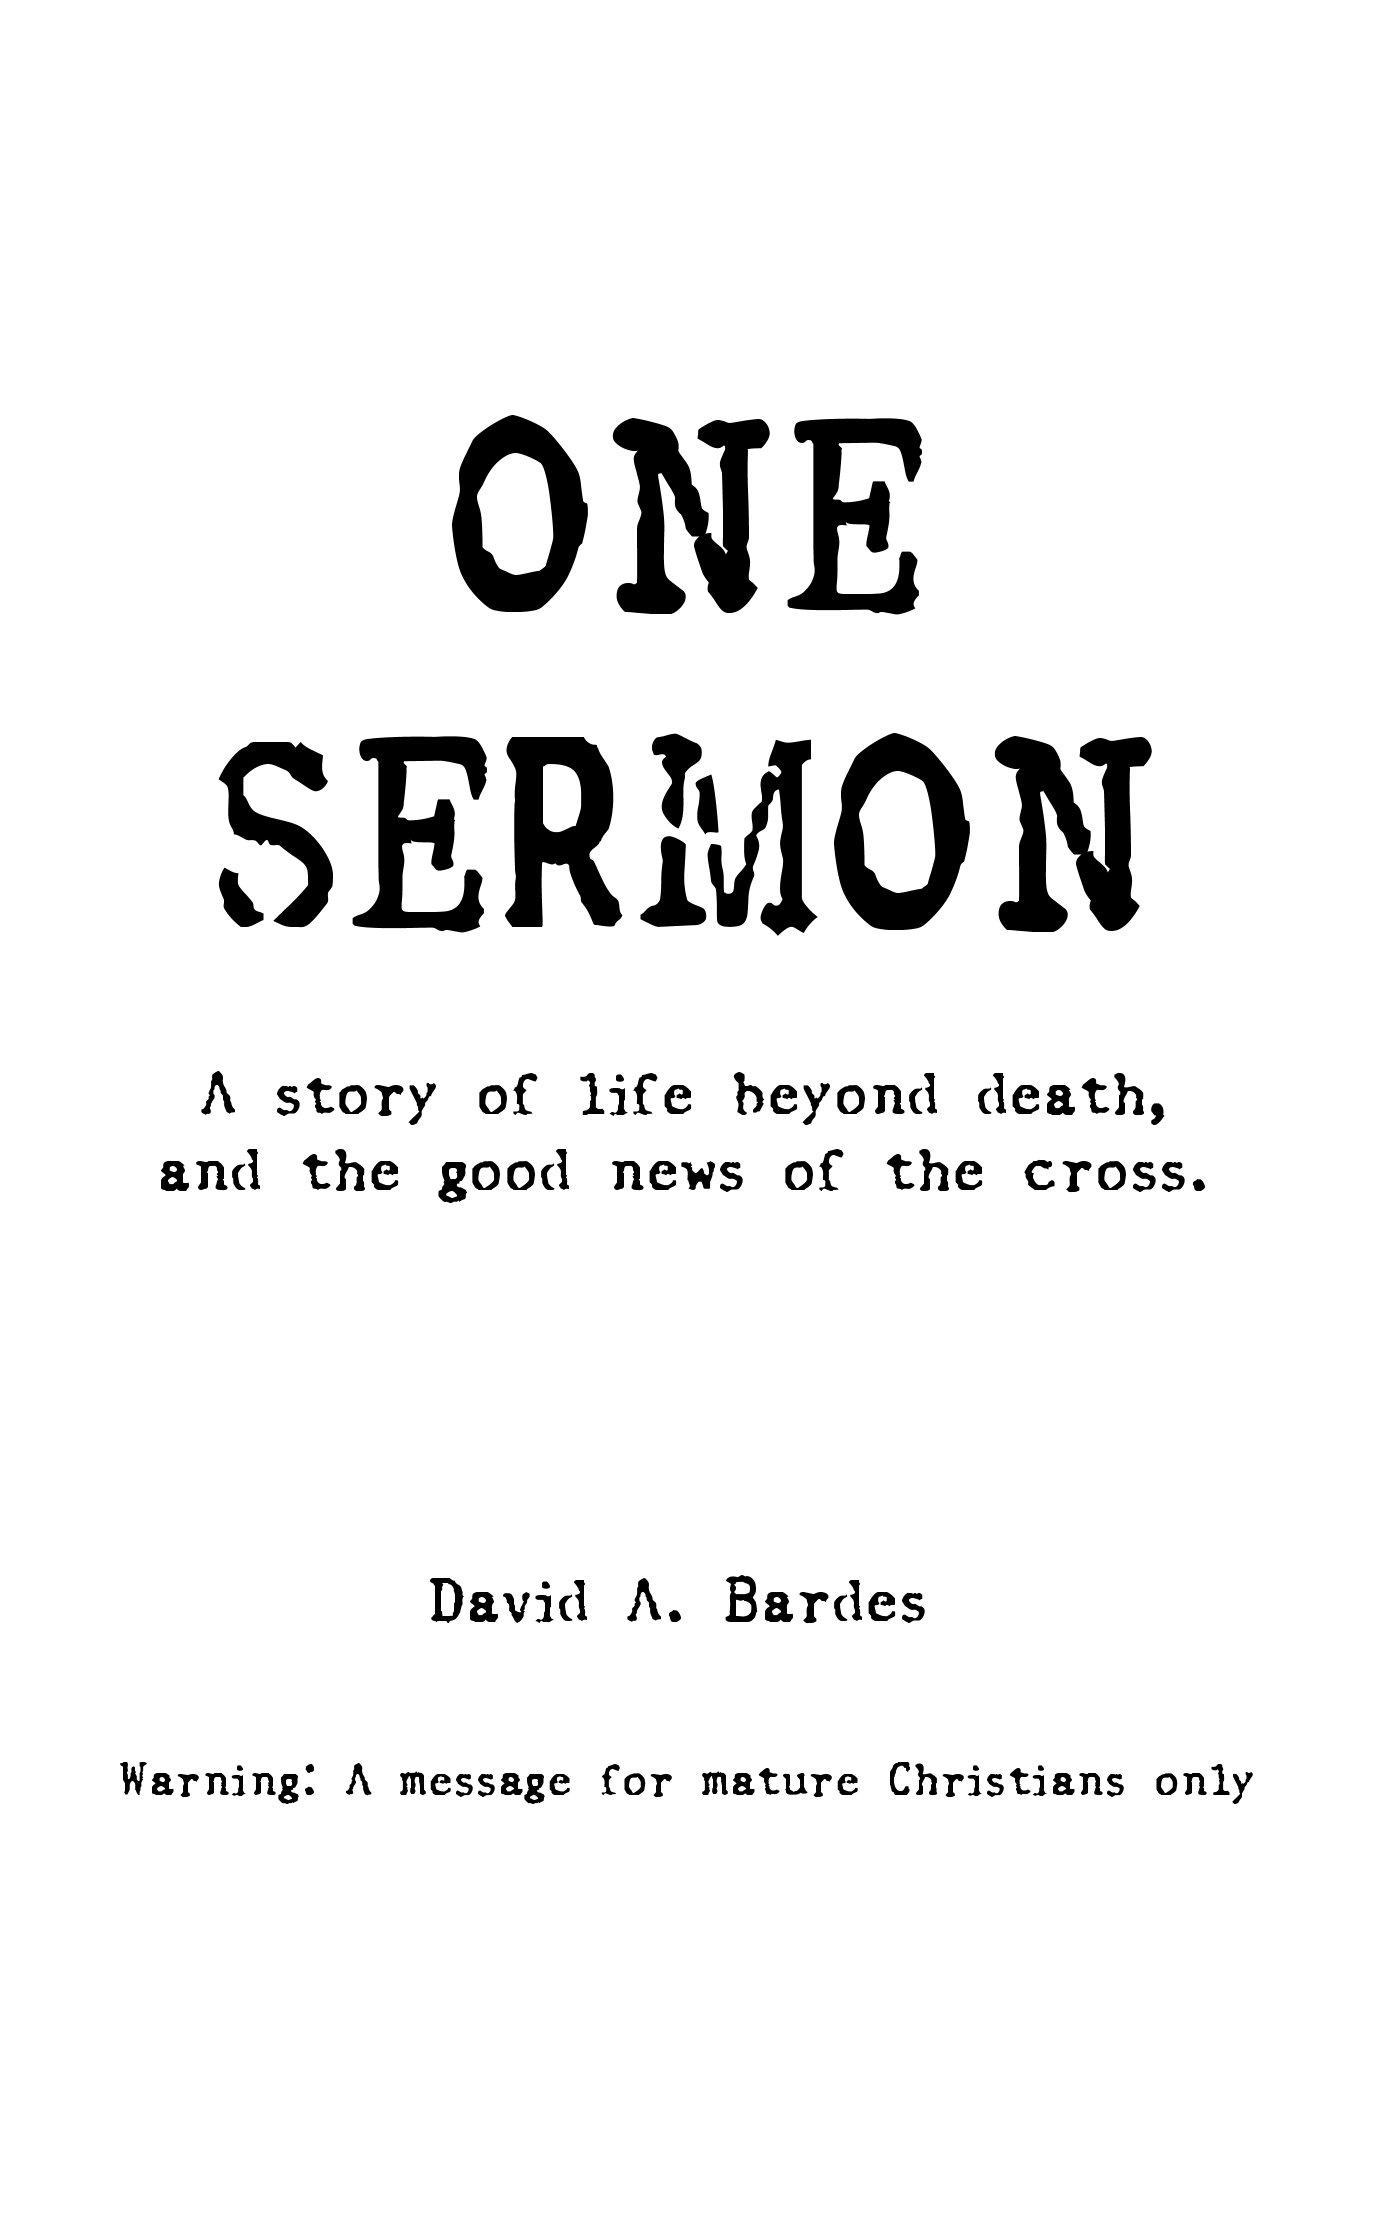 One Sermon: A story of life beyond death, and the good news of the cross.